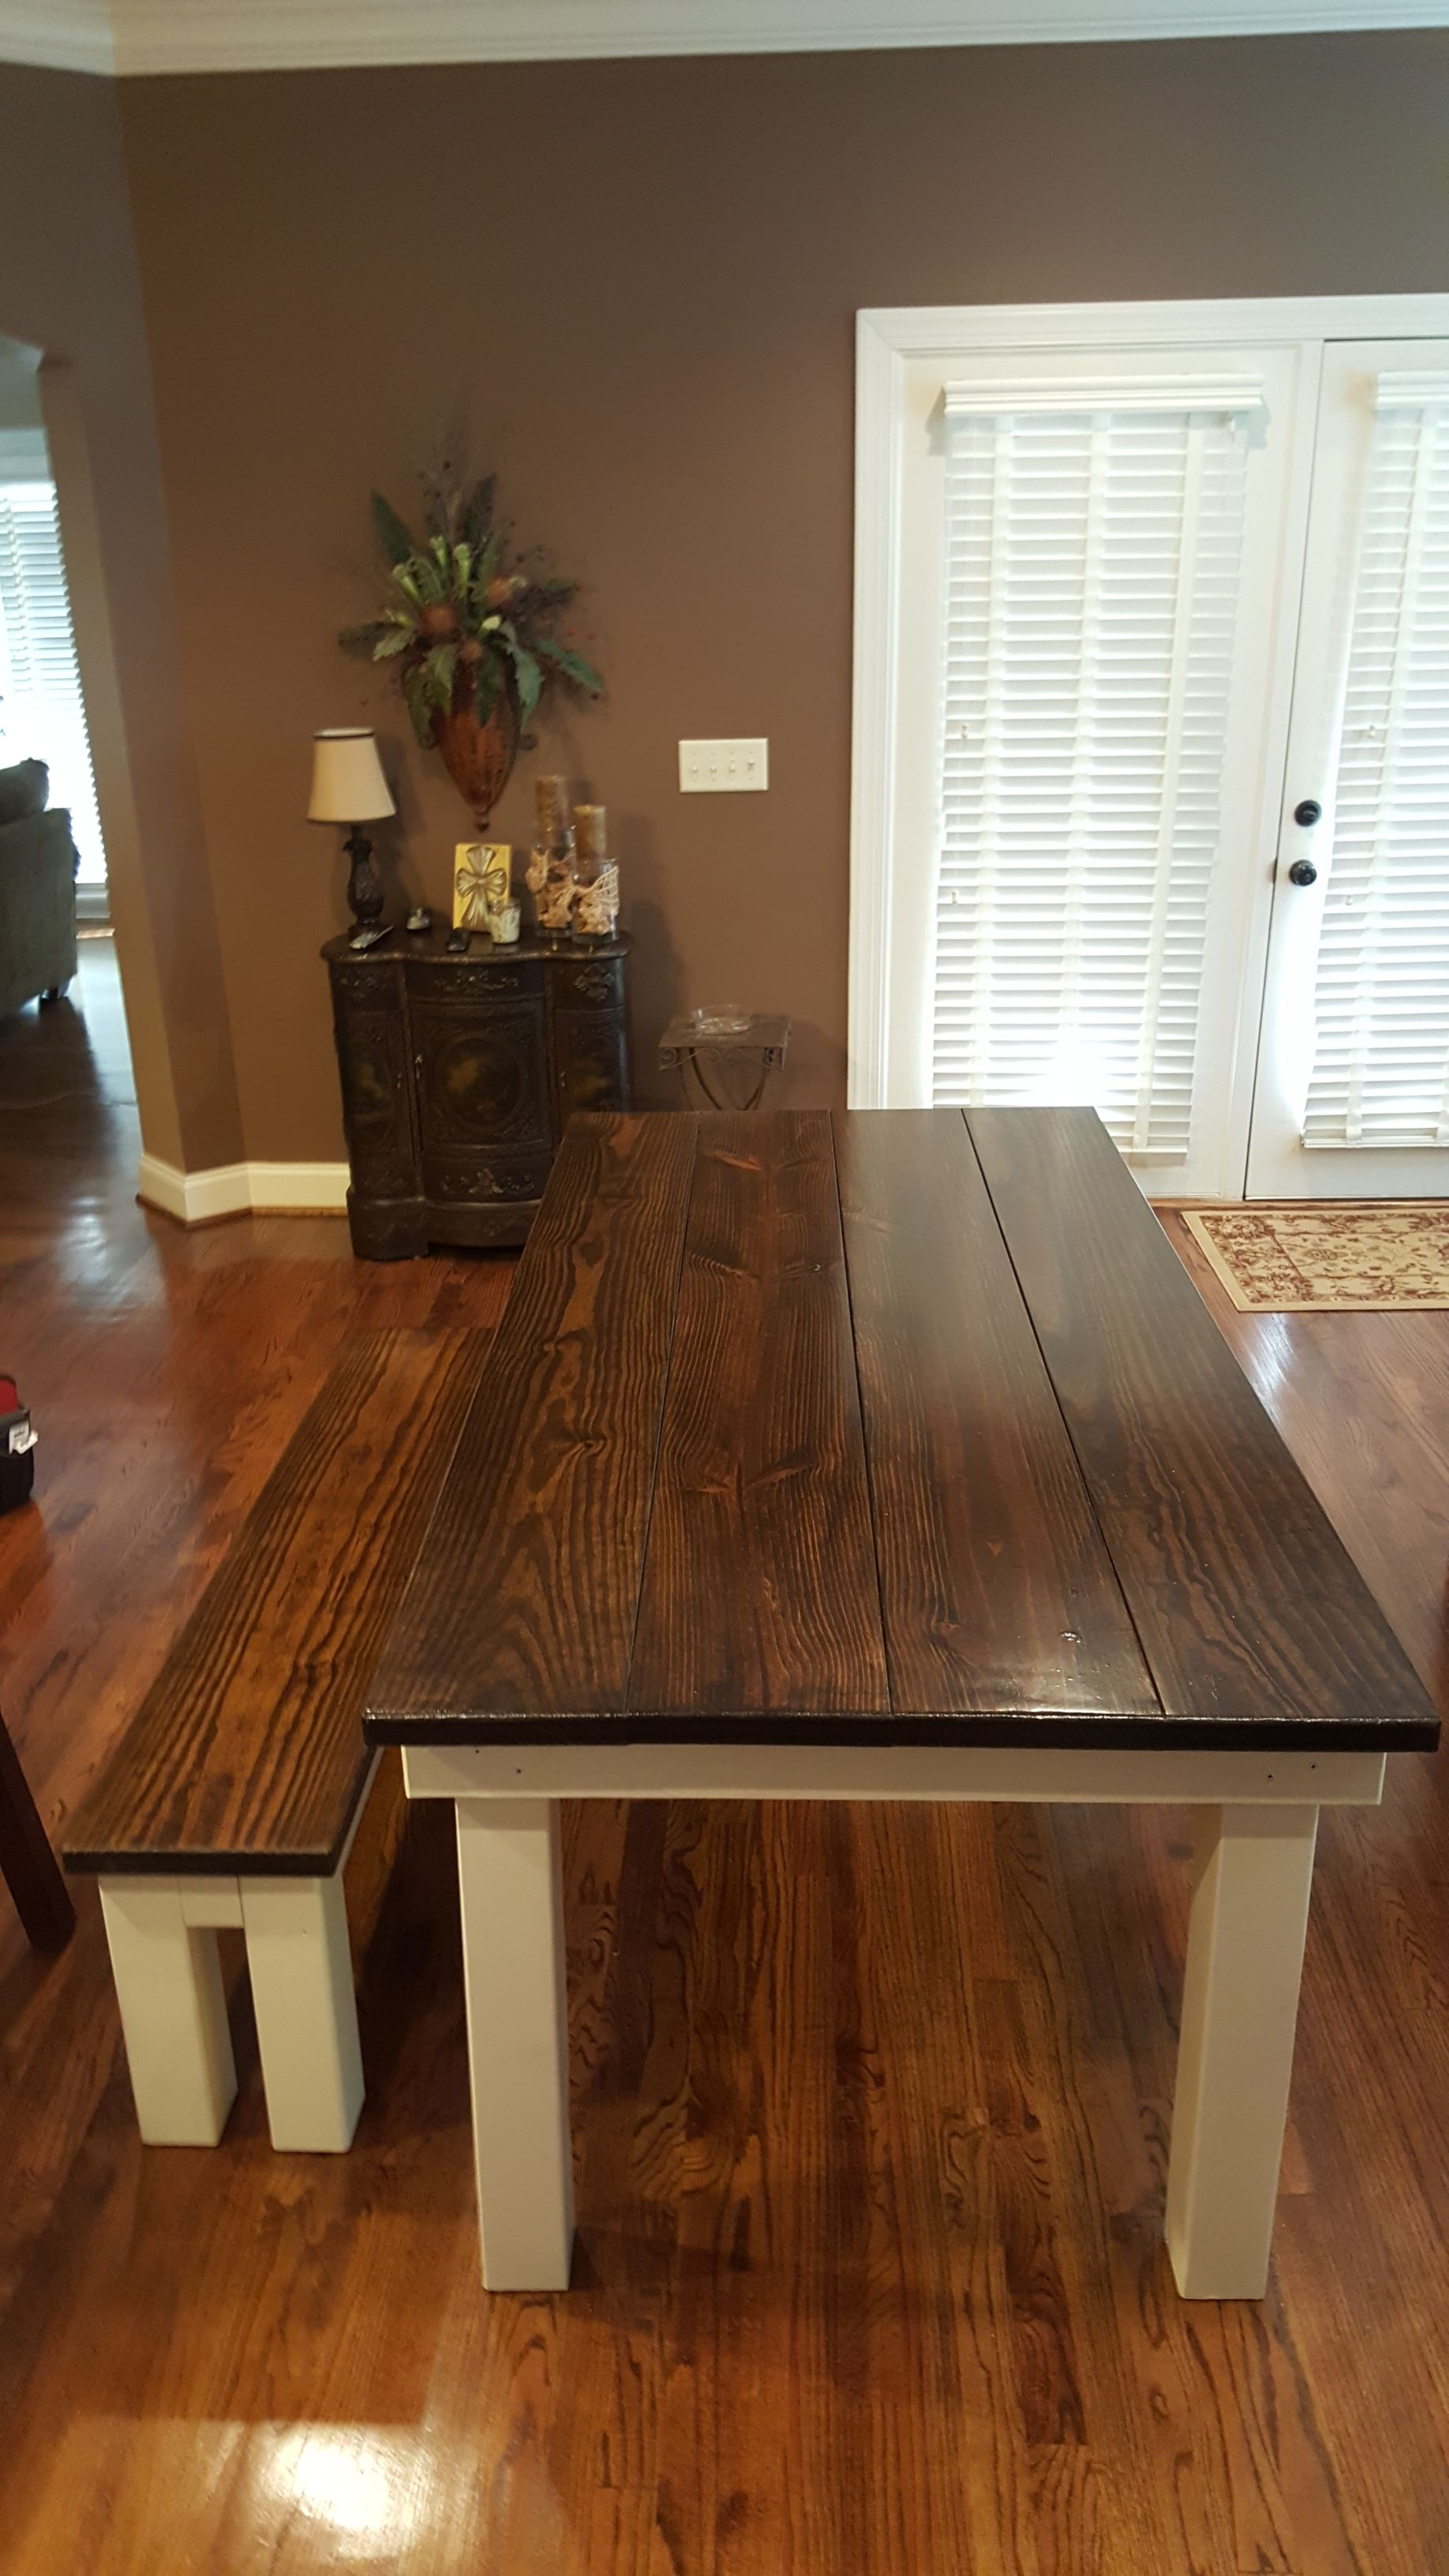 X Farmhouse Table With A Traditional Tabletop Stained Dark Walnut